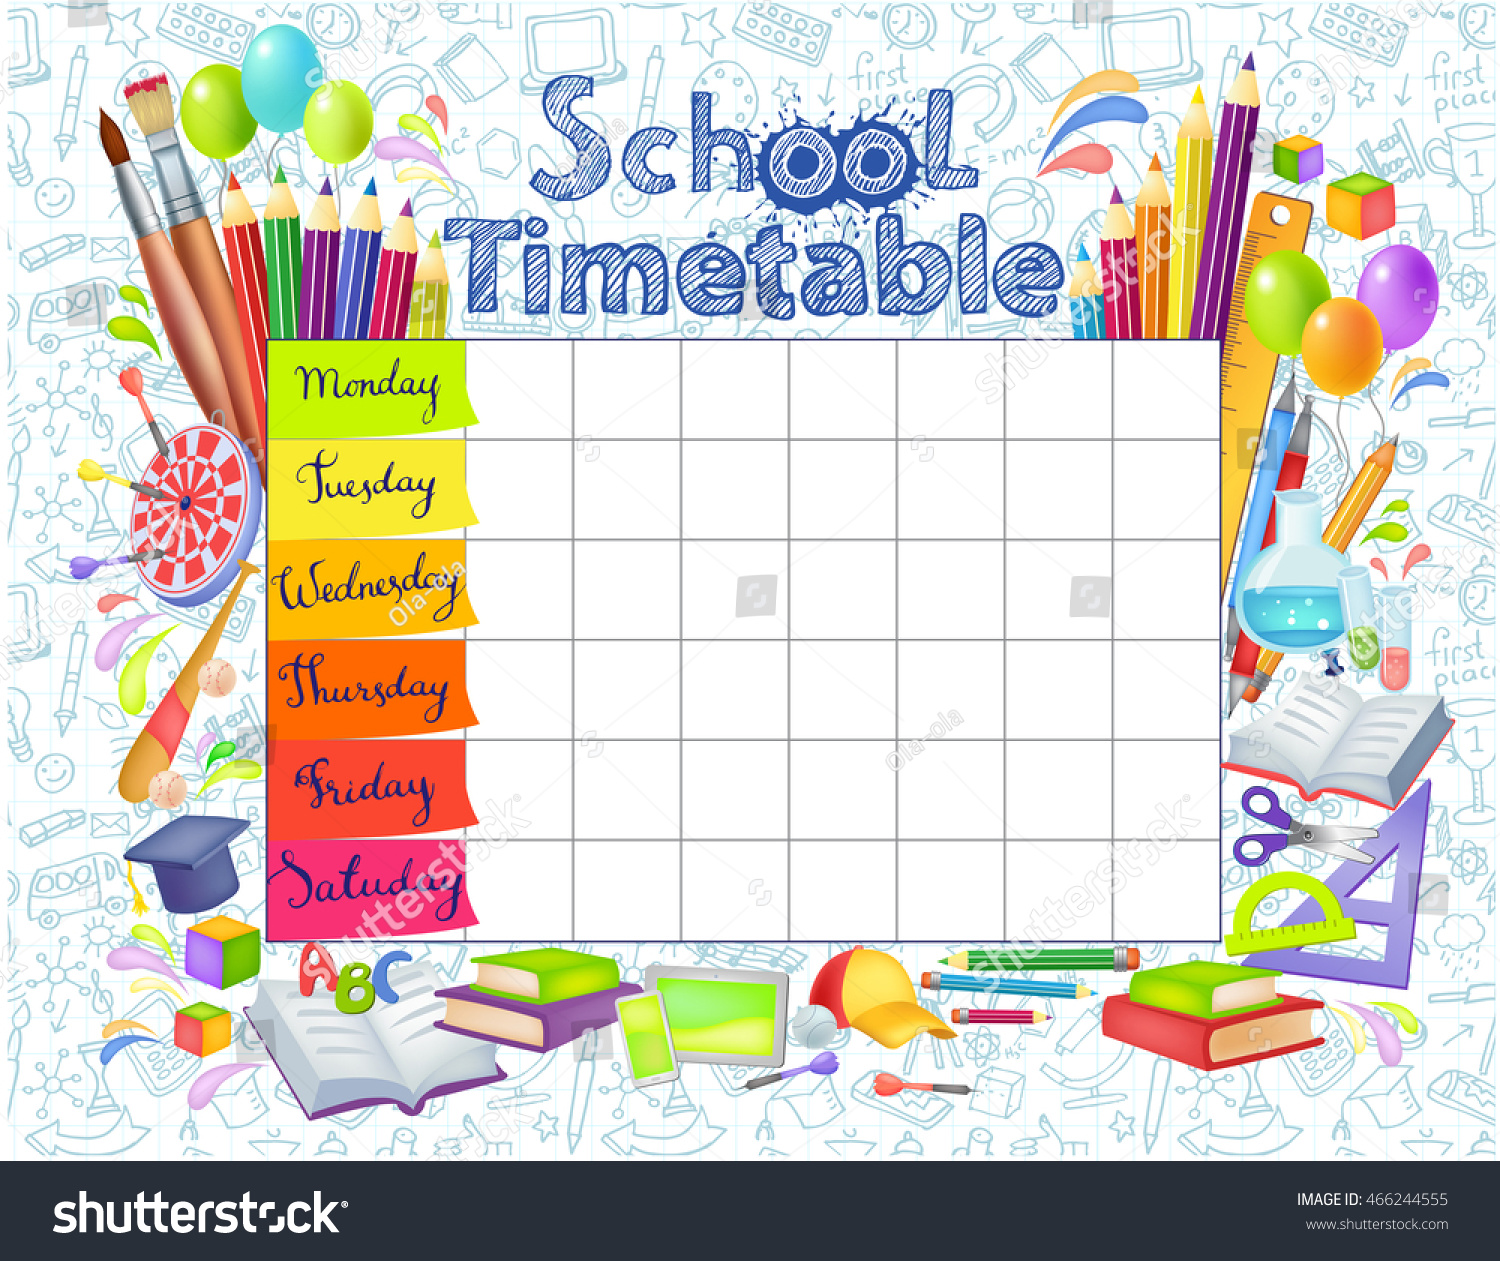 Template School Timetable Students Pupils Days Vector – School Time Table Designs